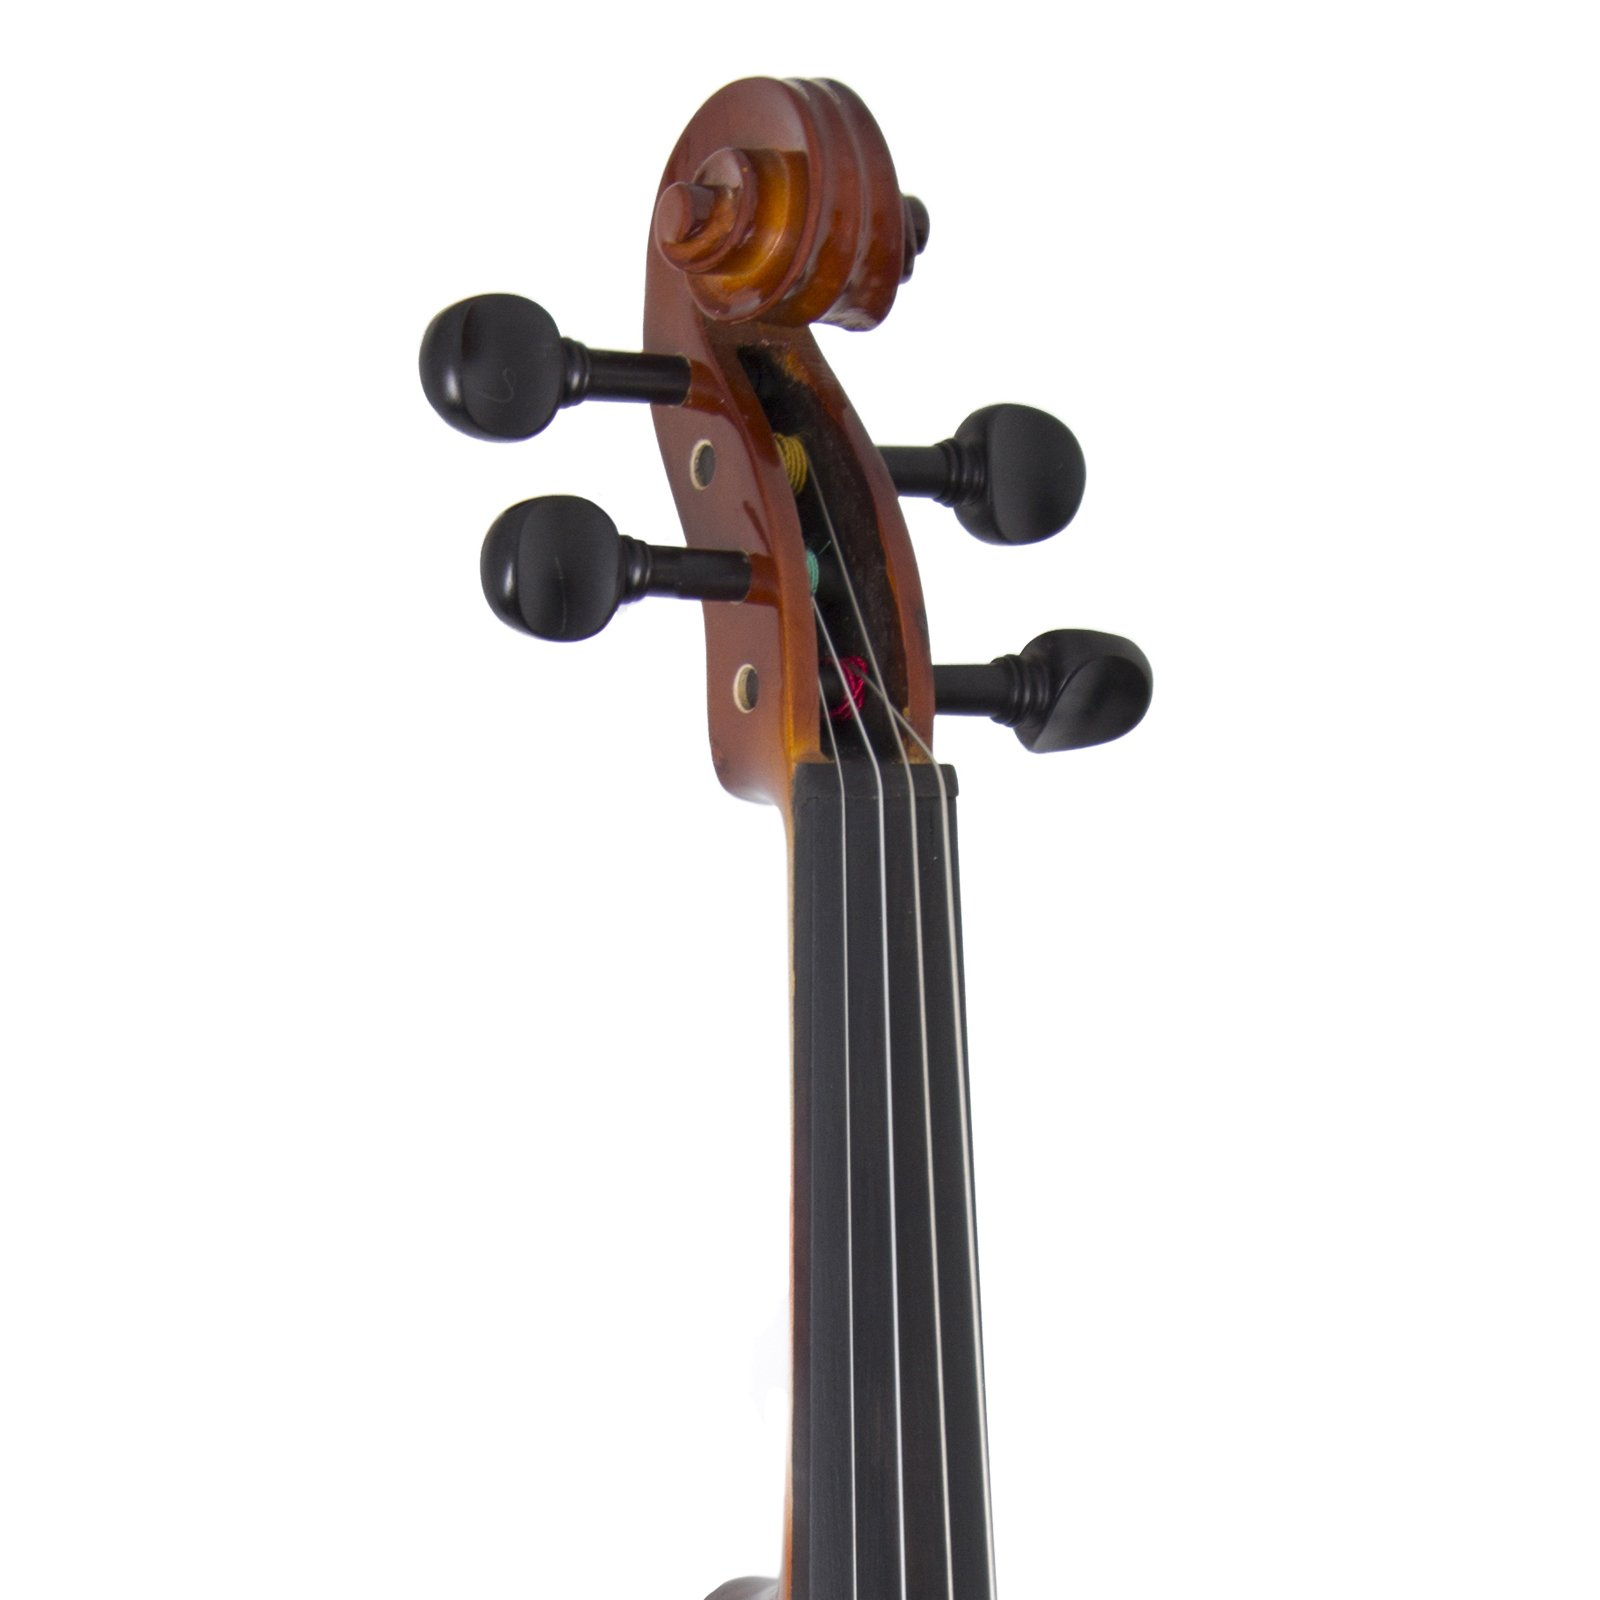 Cecilio CVN-320L Solidwood Ebony Fitted Left-Handed Violin with D'Addario Prelude Strings, Size 4/4 (Full Size) by Cecilio (Image #6)